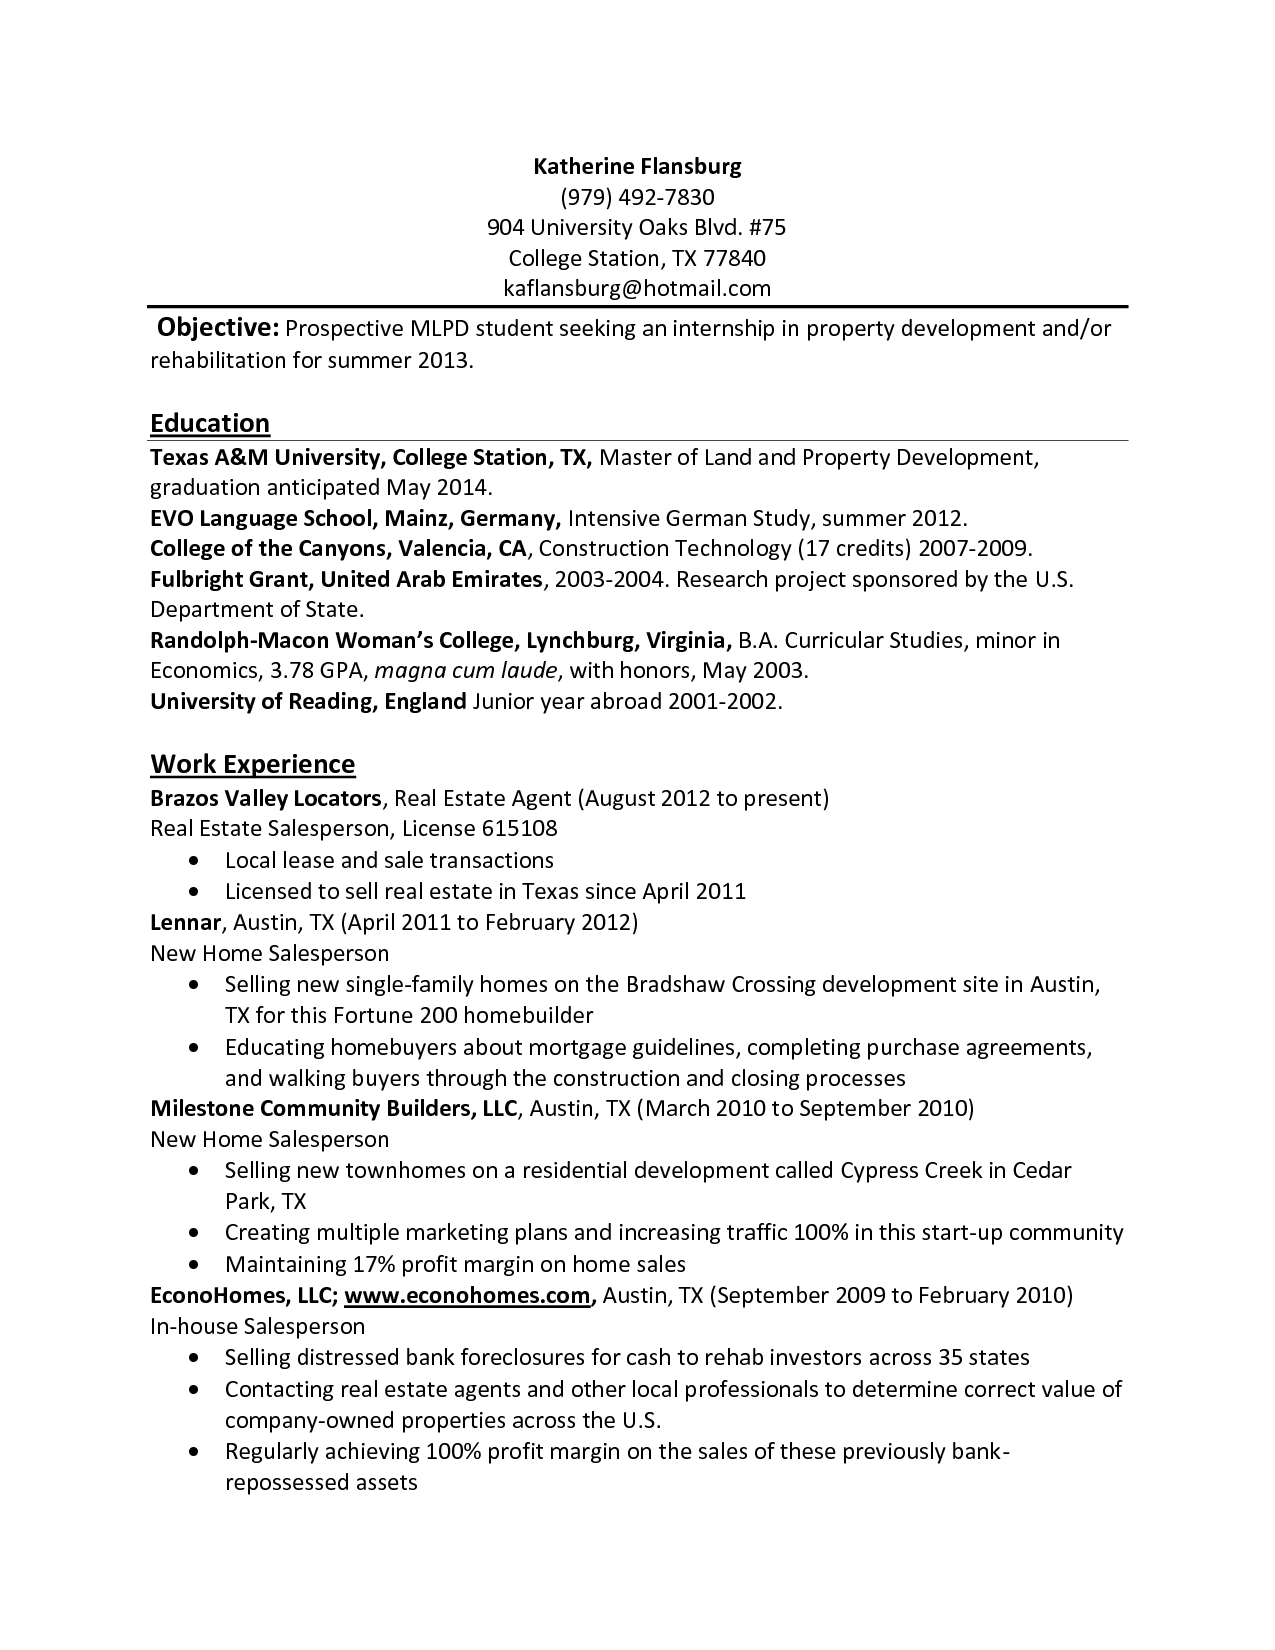 High Quality Resume For Undergraduate Psychology Students Guide To The Resume Psychology  Iupui Undergraduate Resume Sample For Undergraduate To Resume For Internship College Student